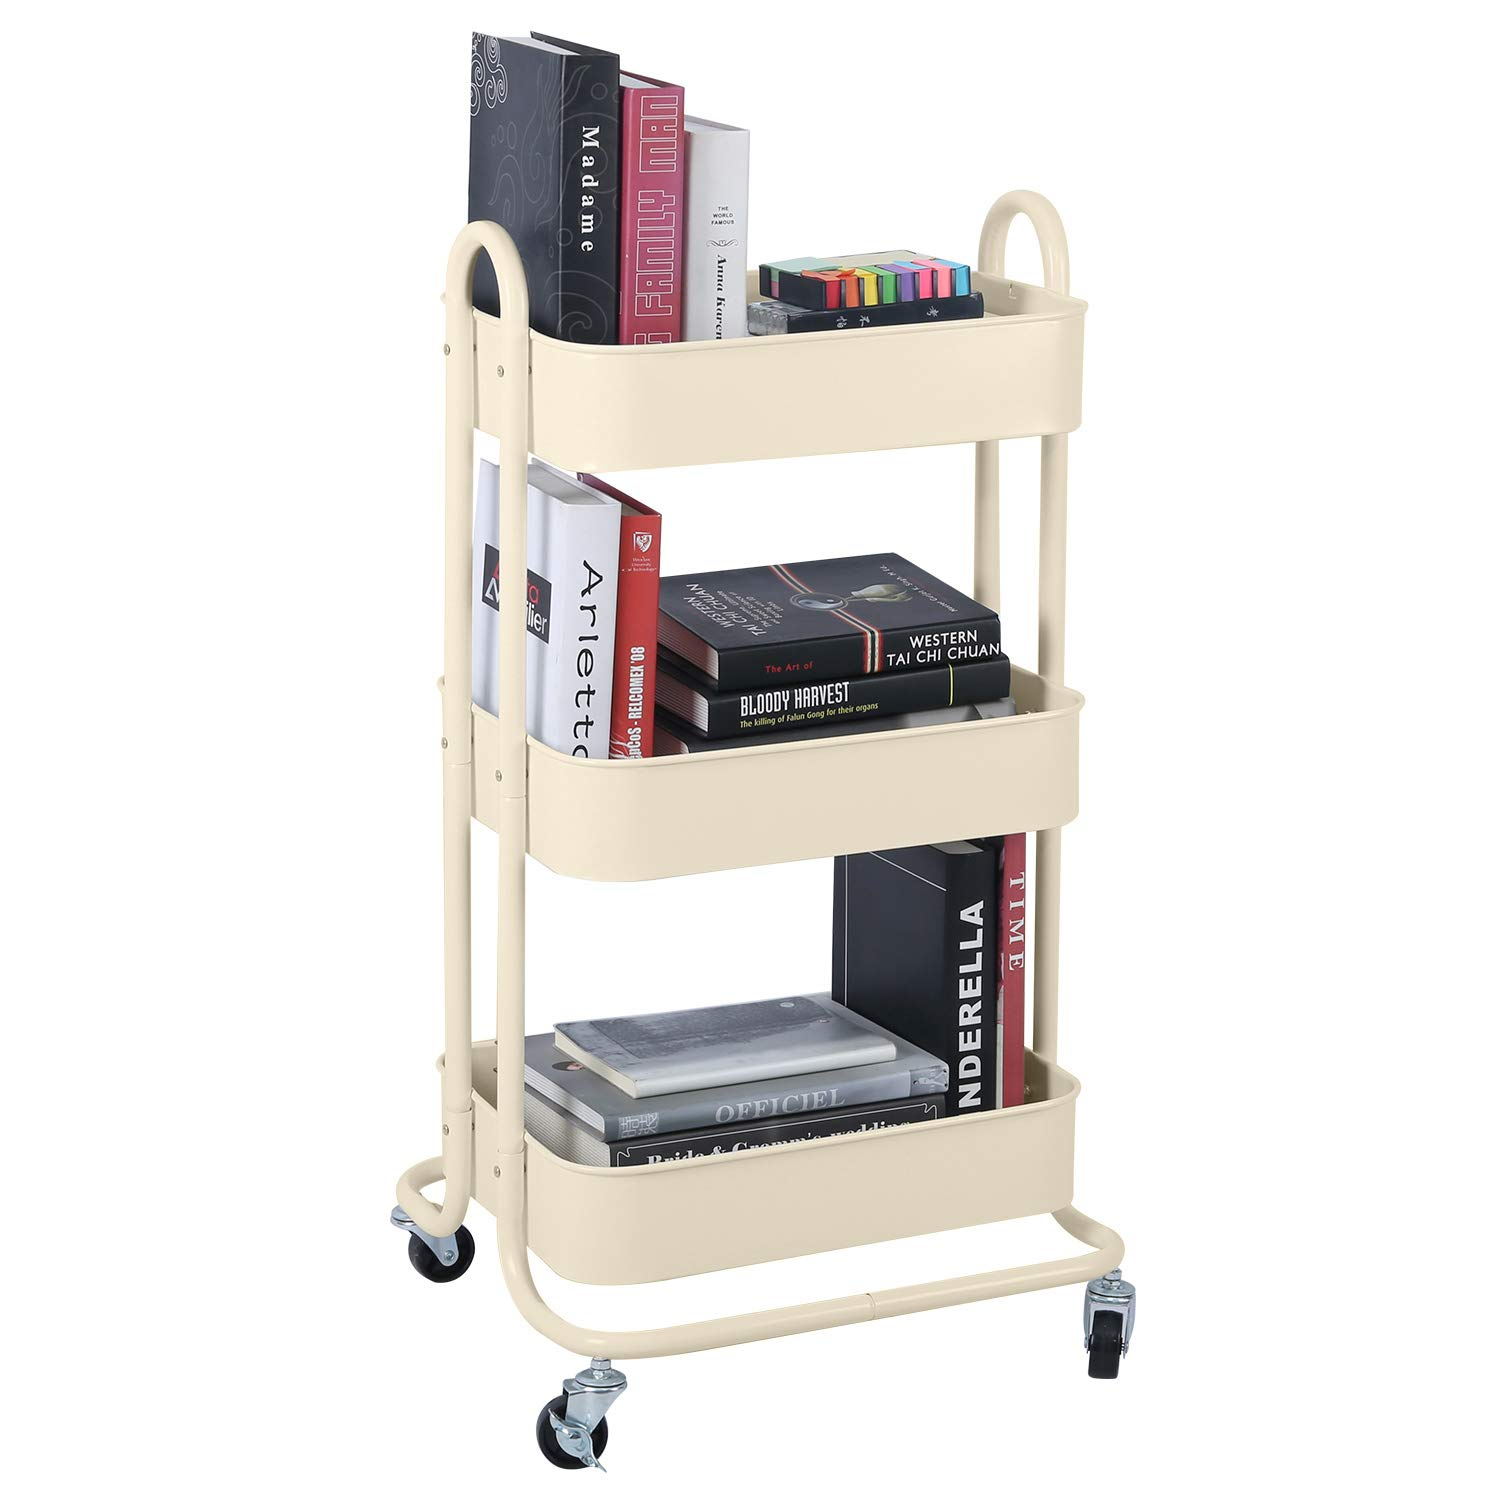 3-Tier Metal Mesh Utility Rolling Cart Storage Organization Cart with Wheels, Beige by Melody House